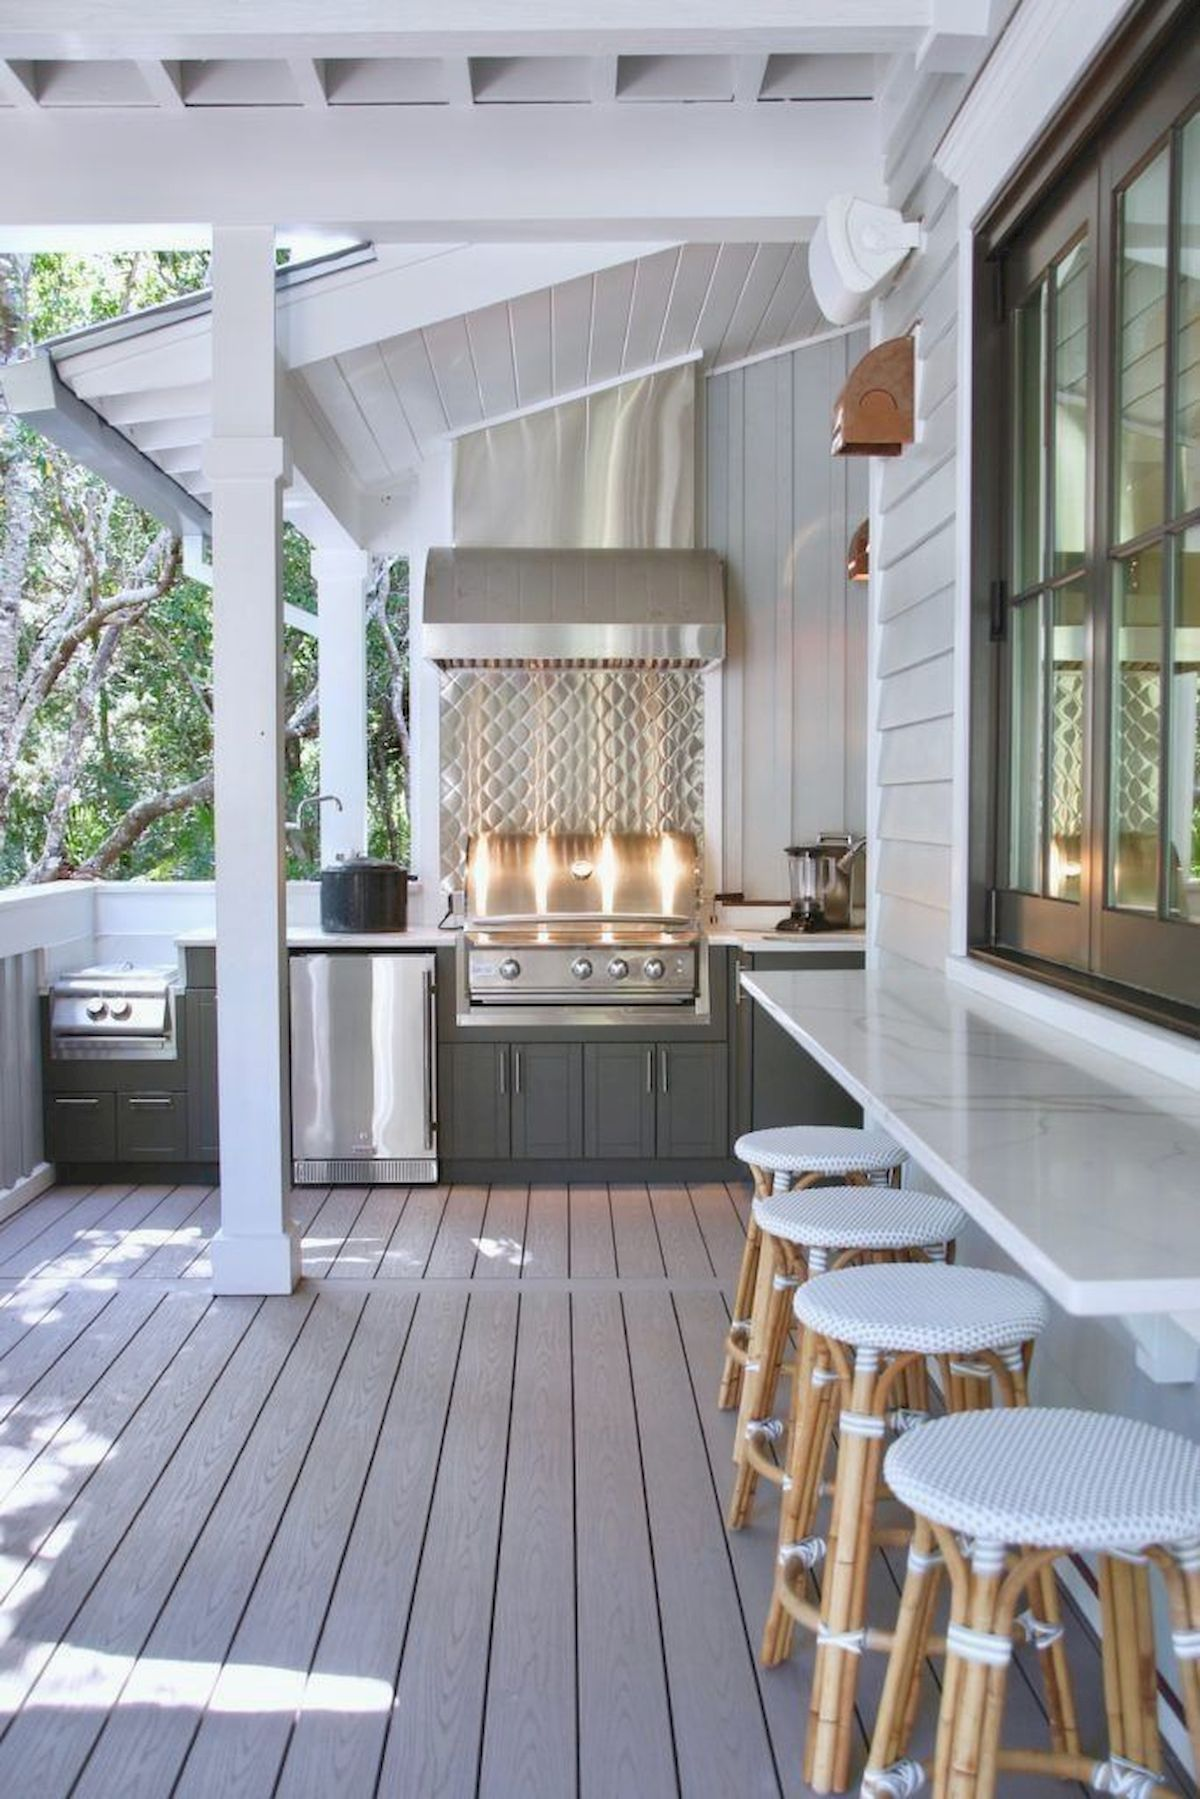 Way's To Make Pass Through Kitchen Window Ideas #backpatio